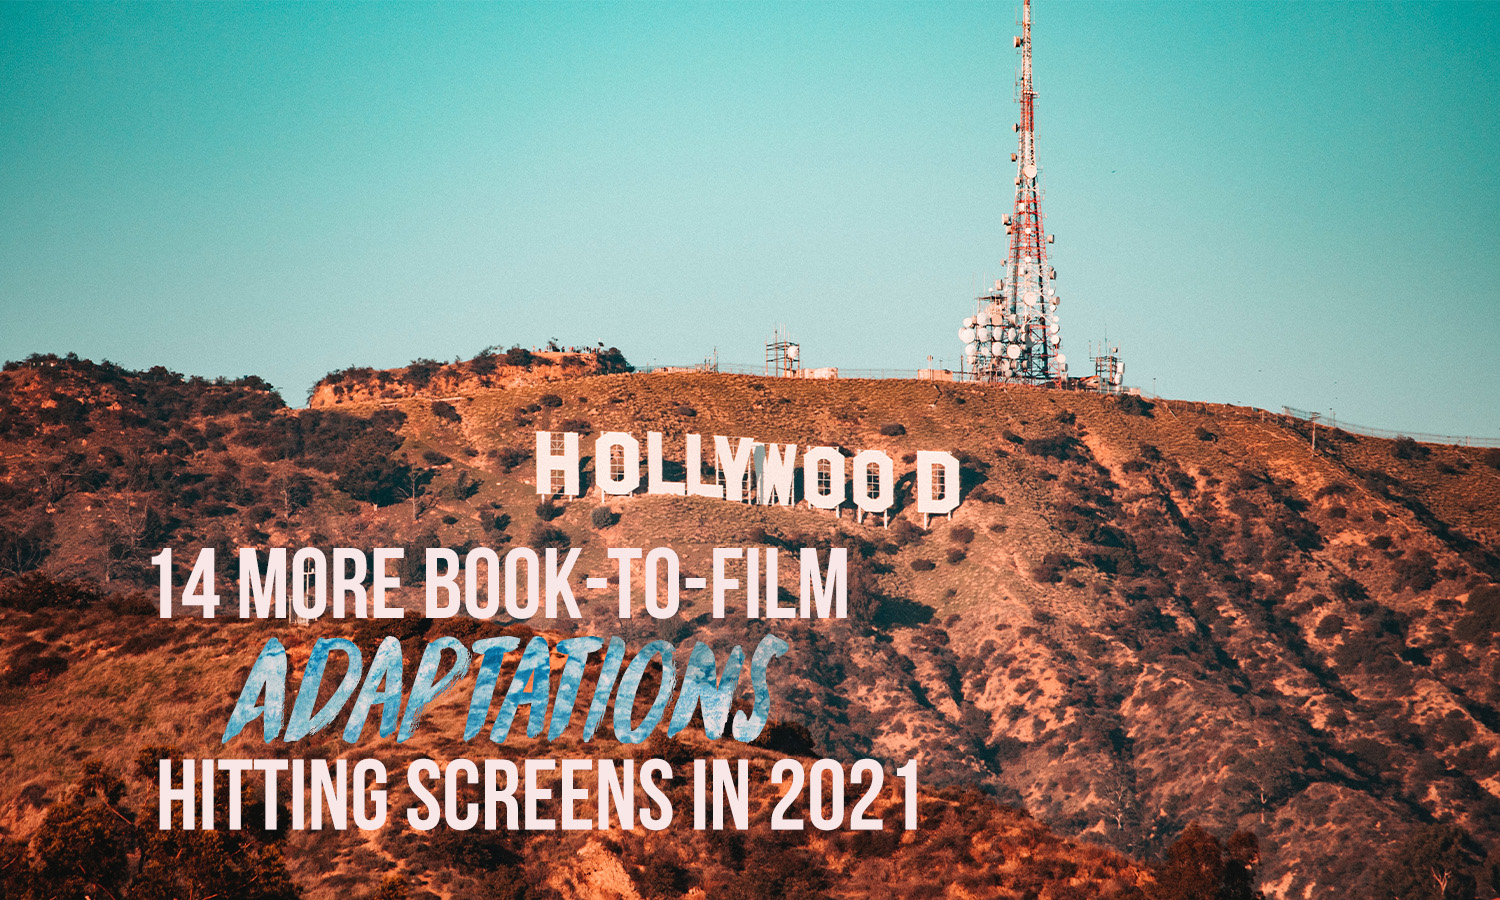 2021 film adaptations